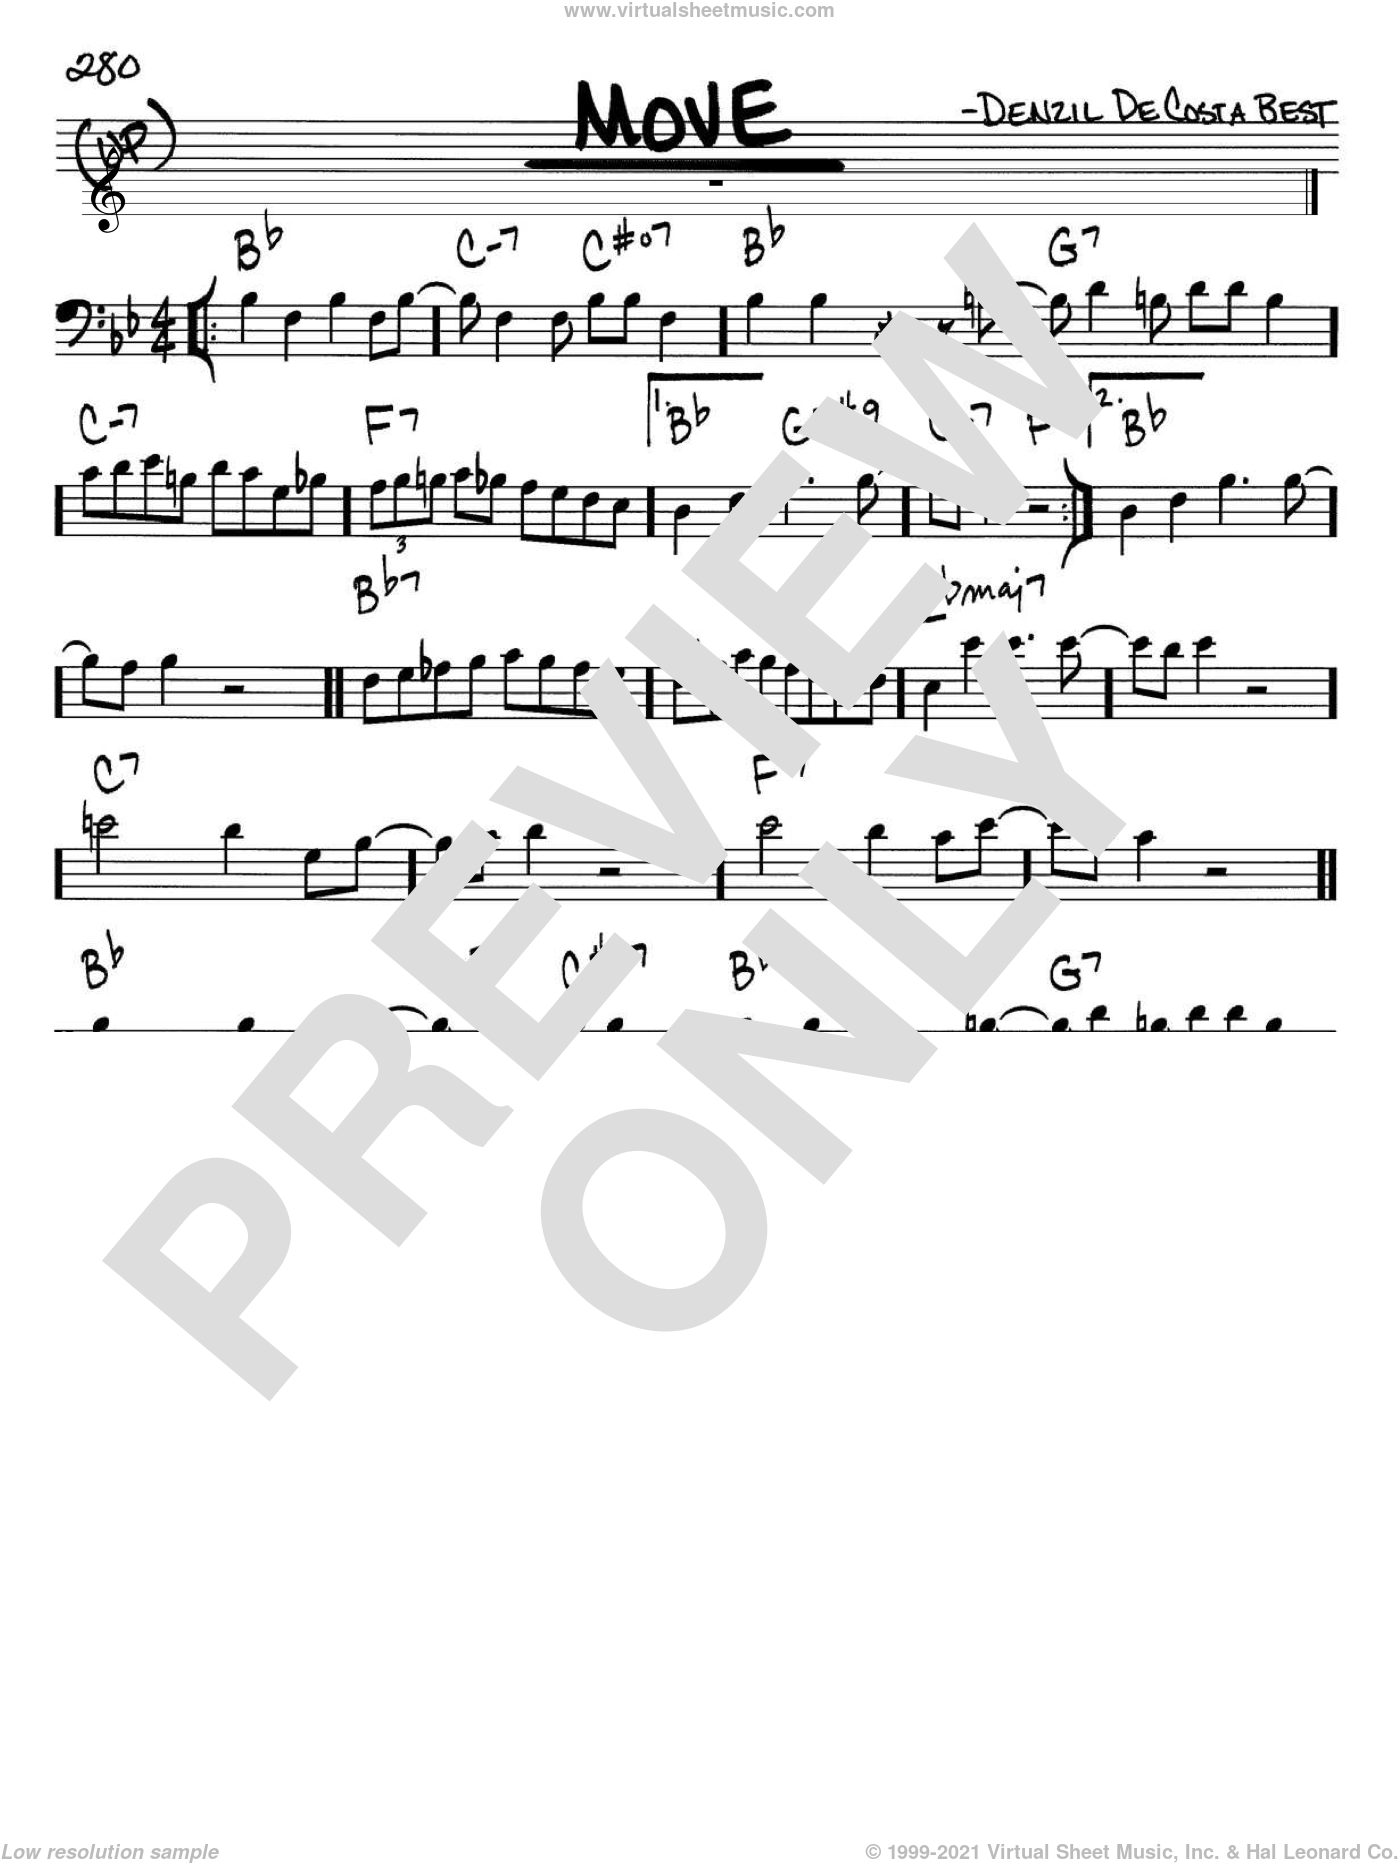 Move sheet music for voice and other instruments (Bass Clef ) by Denzil De Costa Best